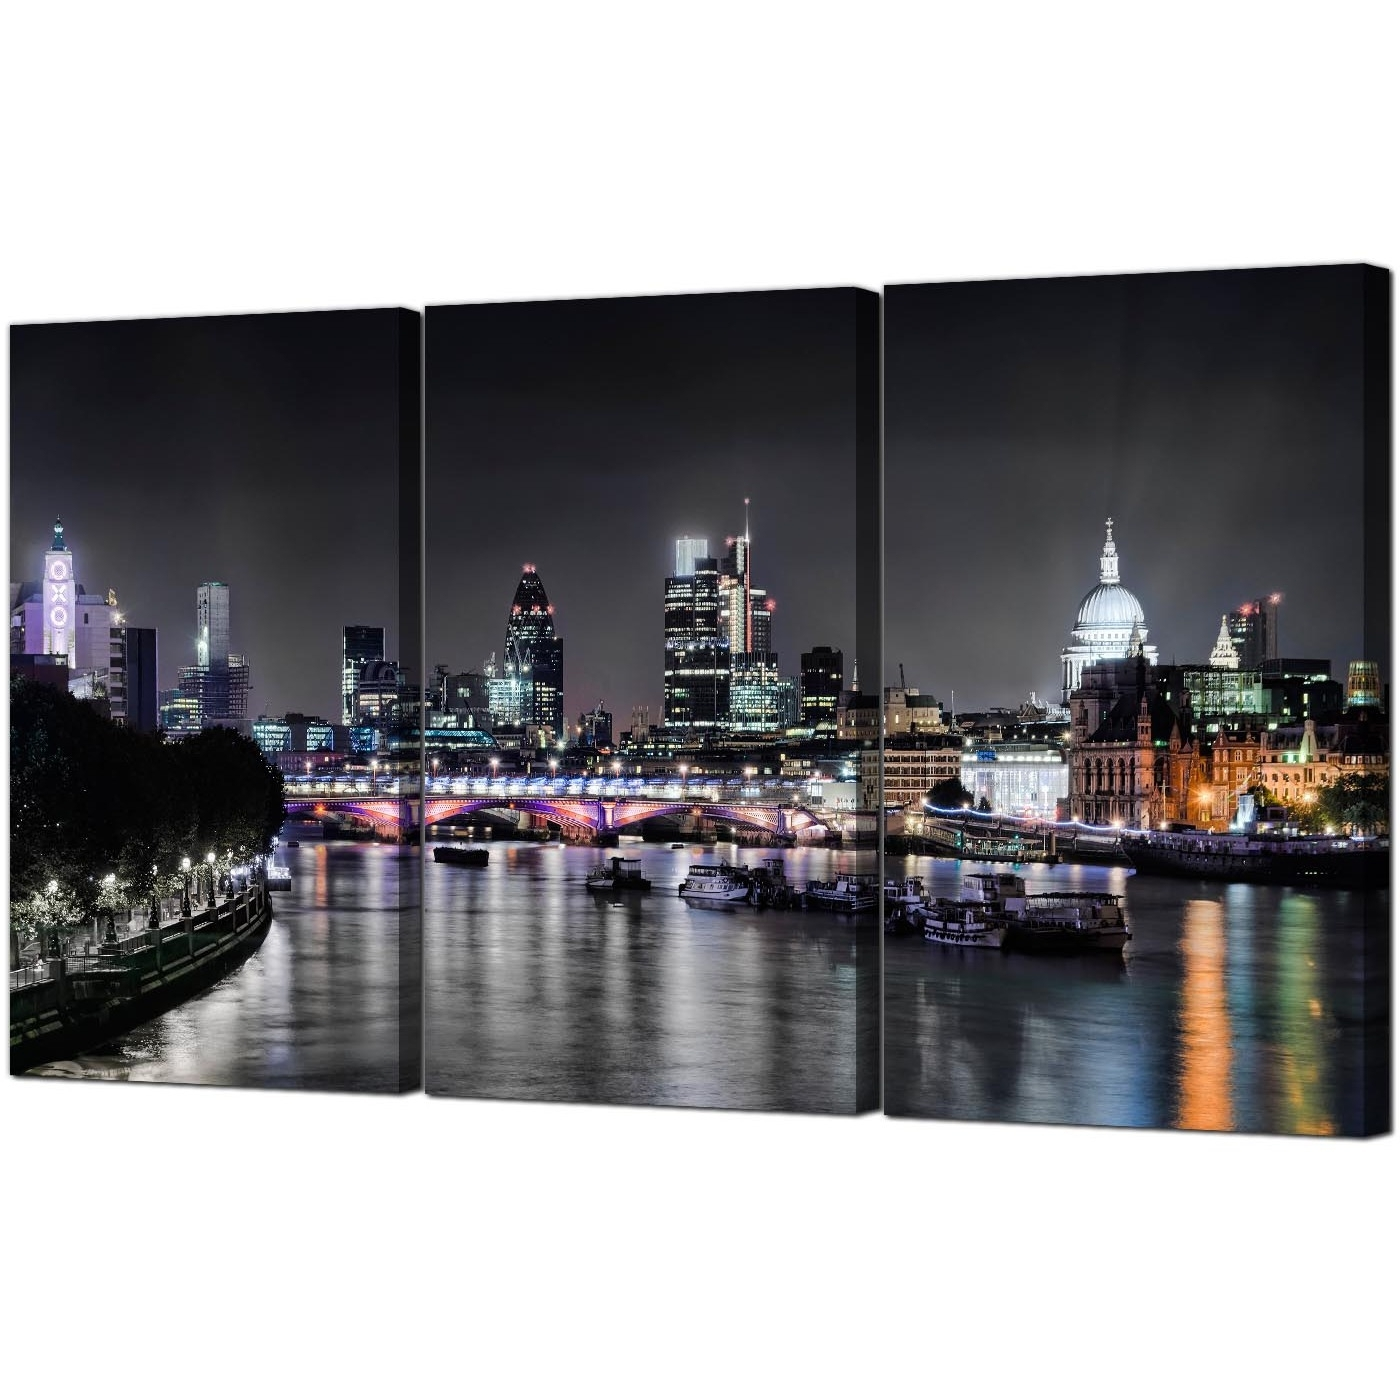 Canvas Wall Art Of London In Trendy Cheap London Skyline At Night Canvas Art 3 Panel For Your Living Room (View 9 of 15)